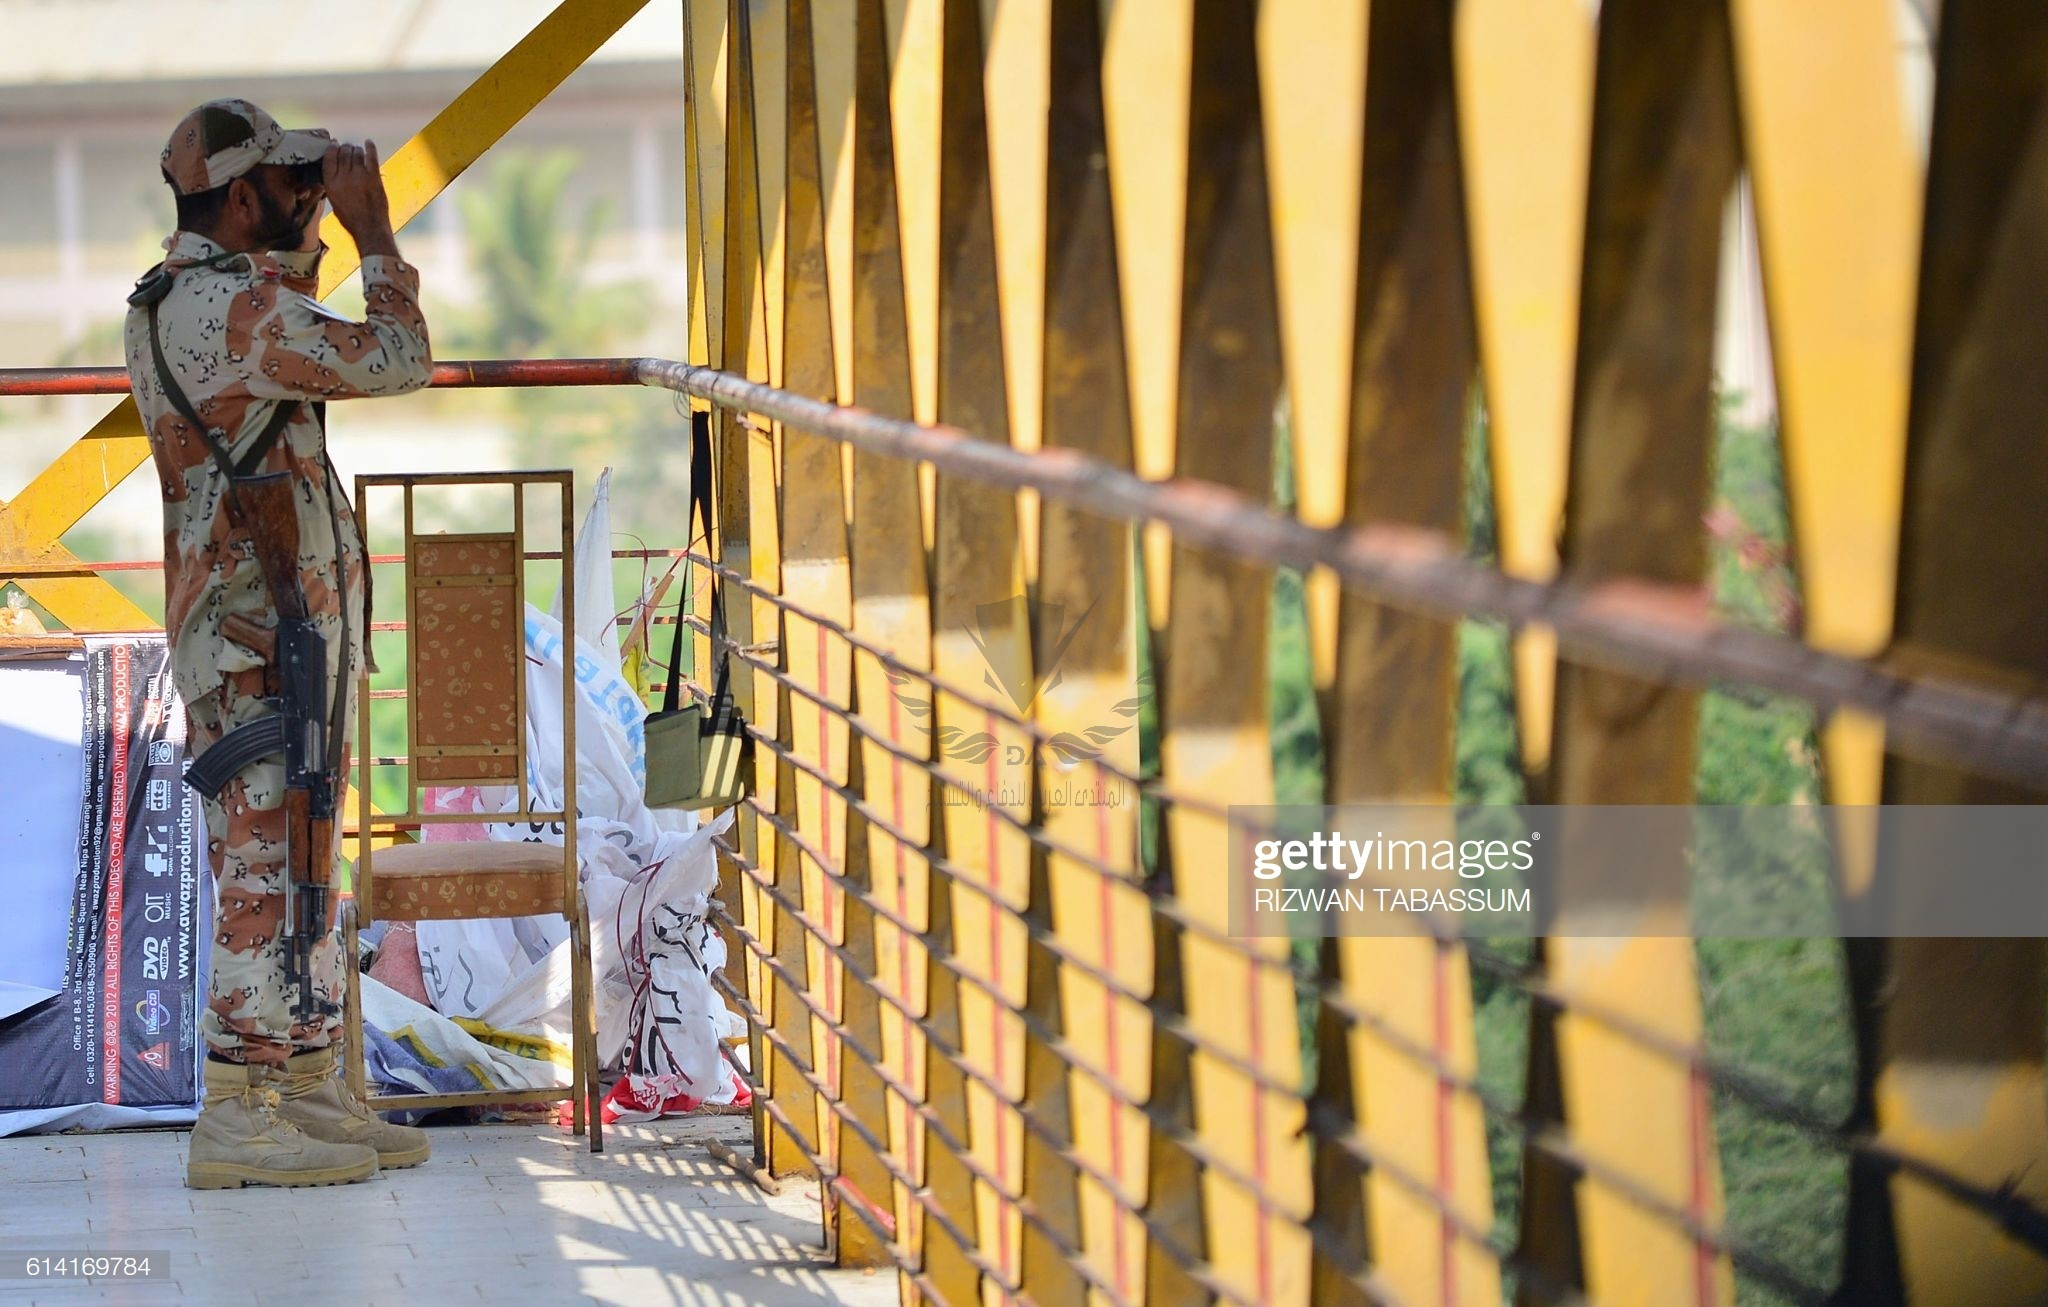 gettyimages-614169784-2048x2048.jpg